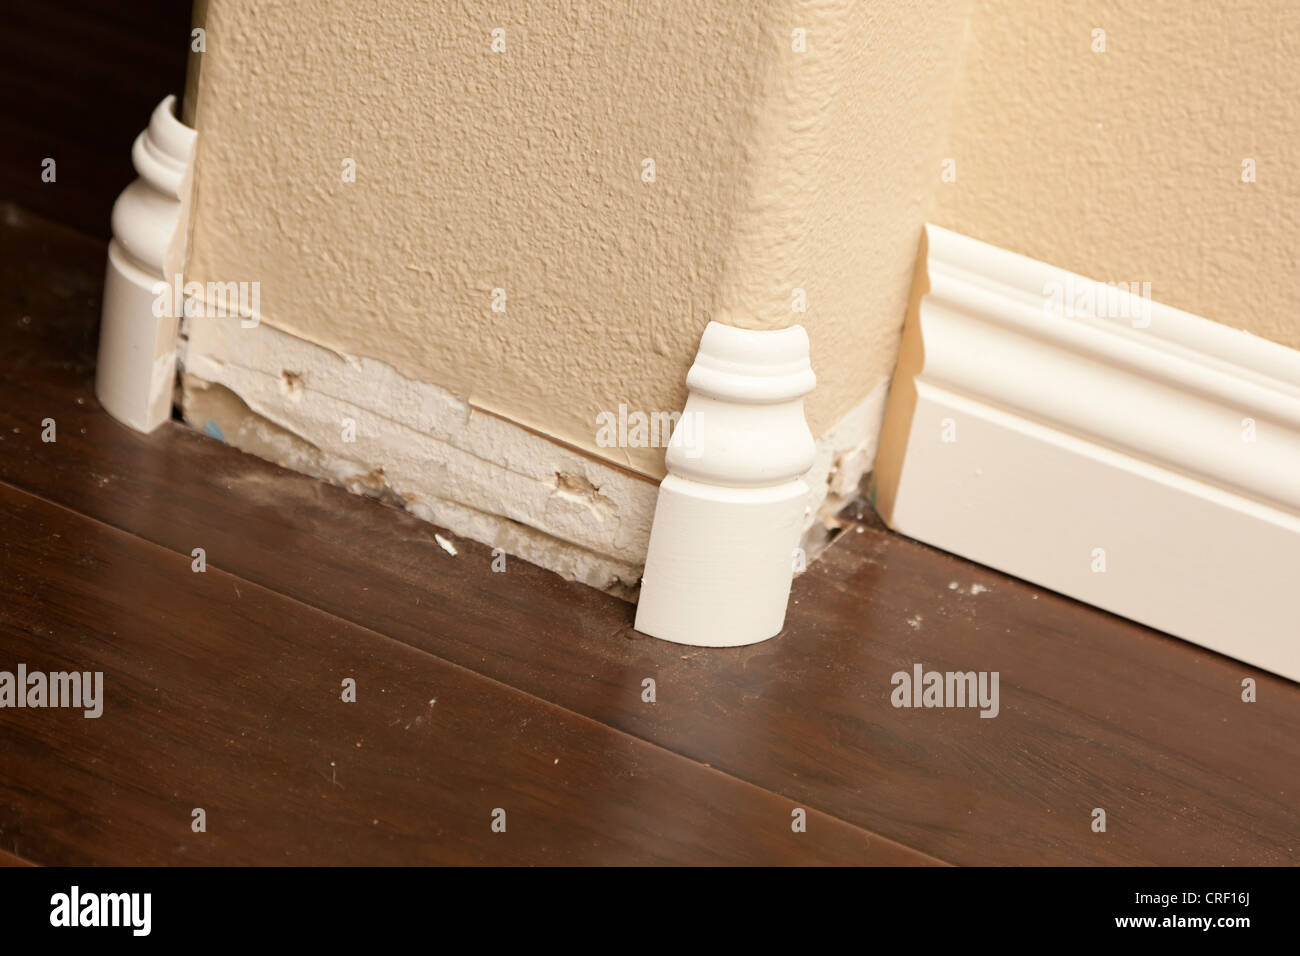 New Baseboard And Bull Nose Corners With Laminate Flooring Abstract